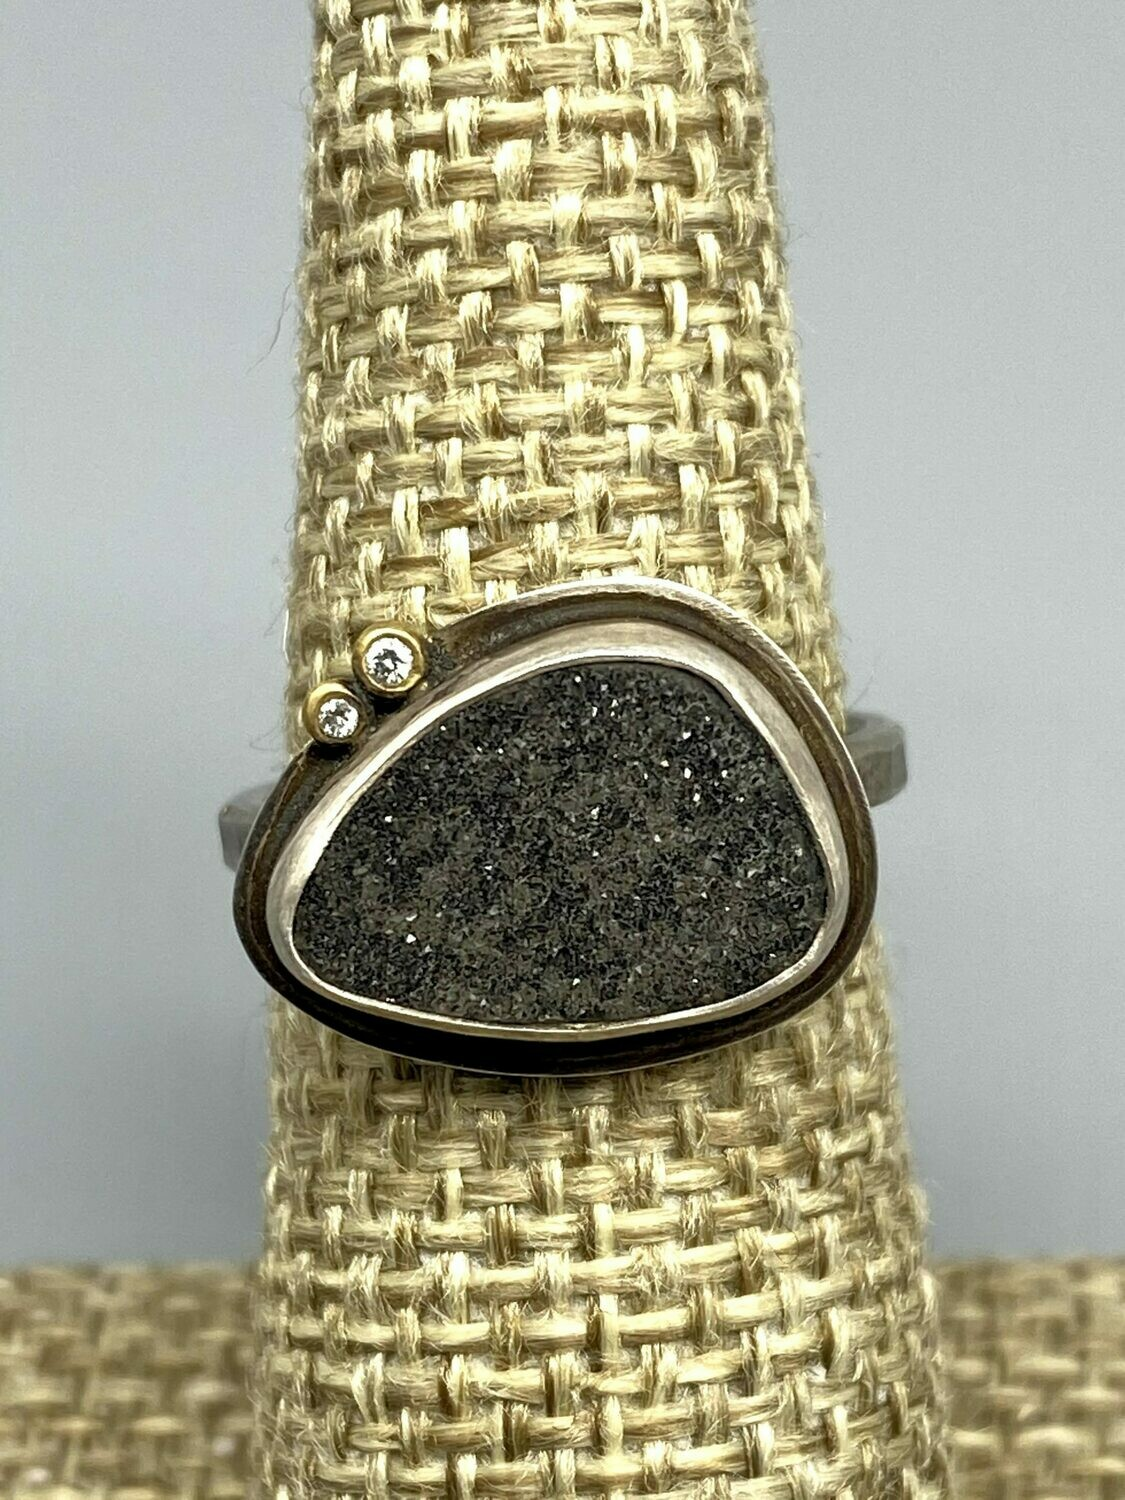 Black Druzy Ring, Sterling Silver w/Diamond Accents Size 6 3/4 - Ananda Khalsa - Northampton MA